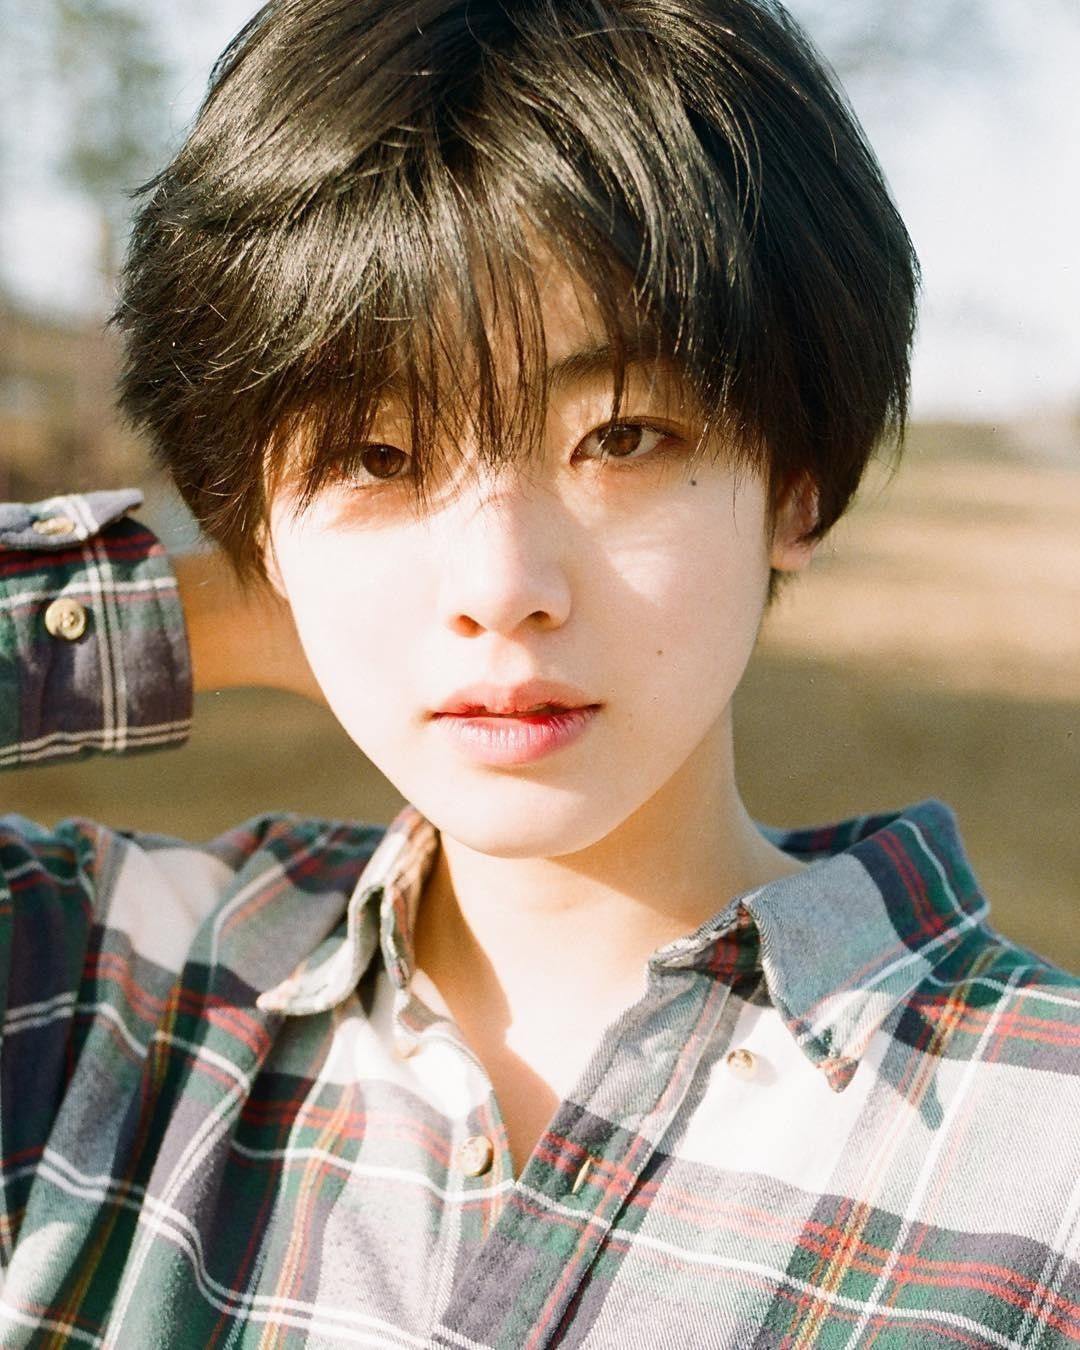 asian-hair-style-new-hairstyle-for-asian-hair-male-beautiful-tomboy-haircut-0d-tomboy-of-asian-hair-style